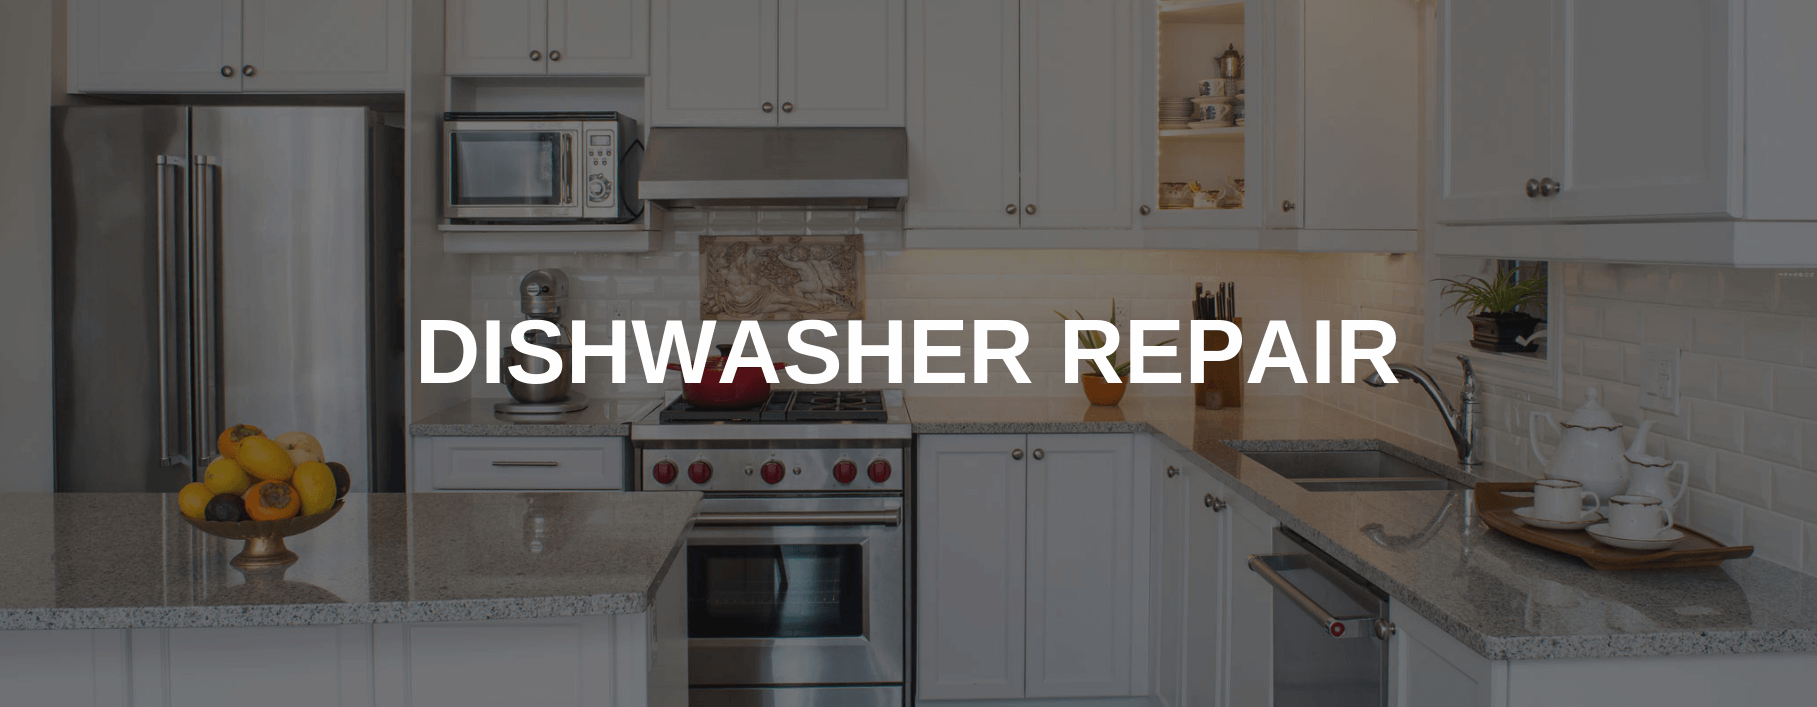 dishwasher repair moore